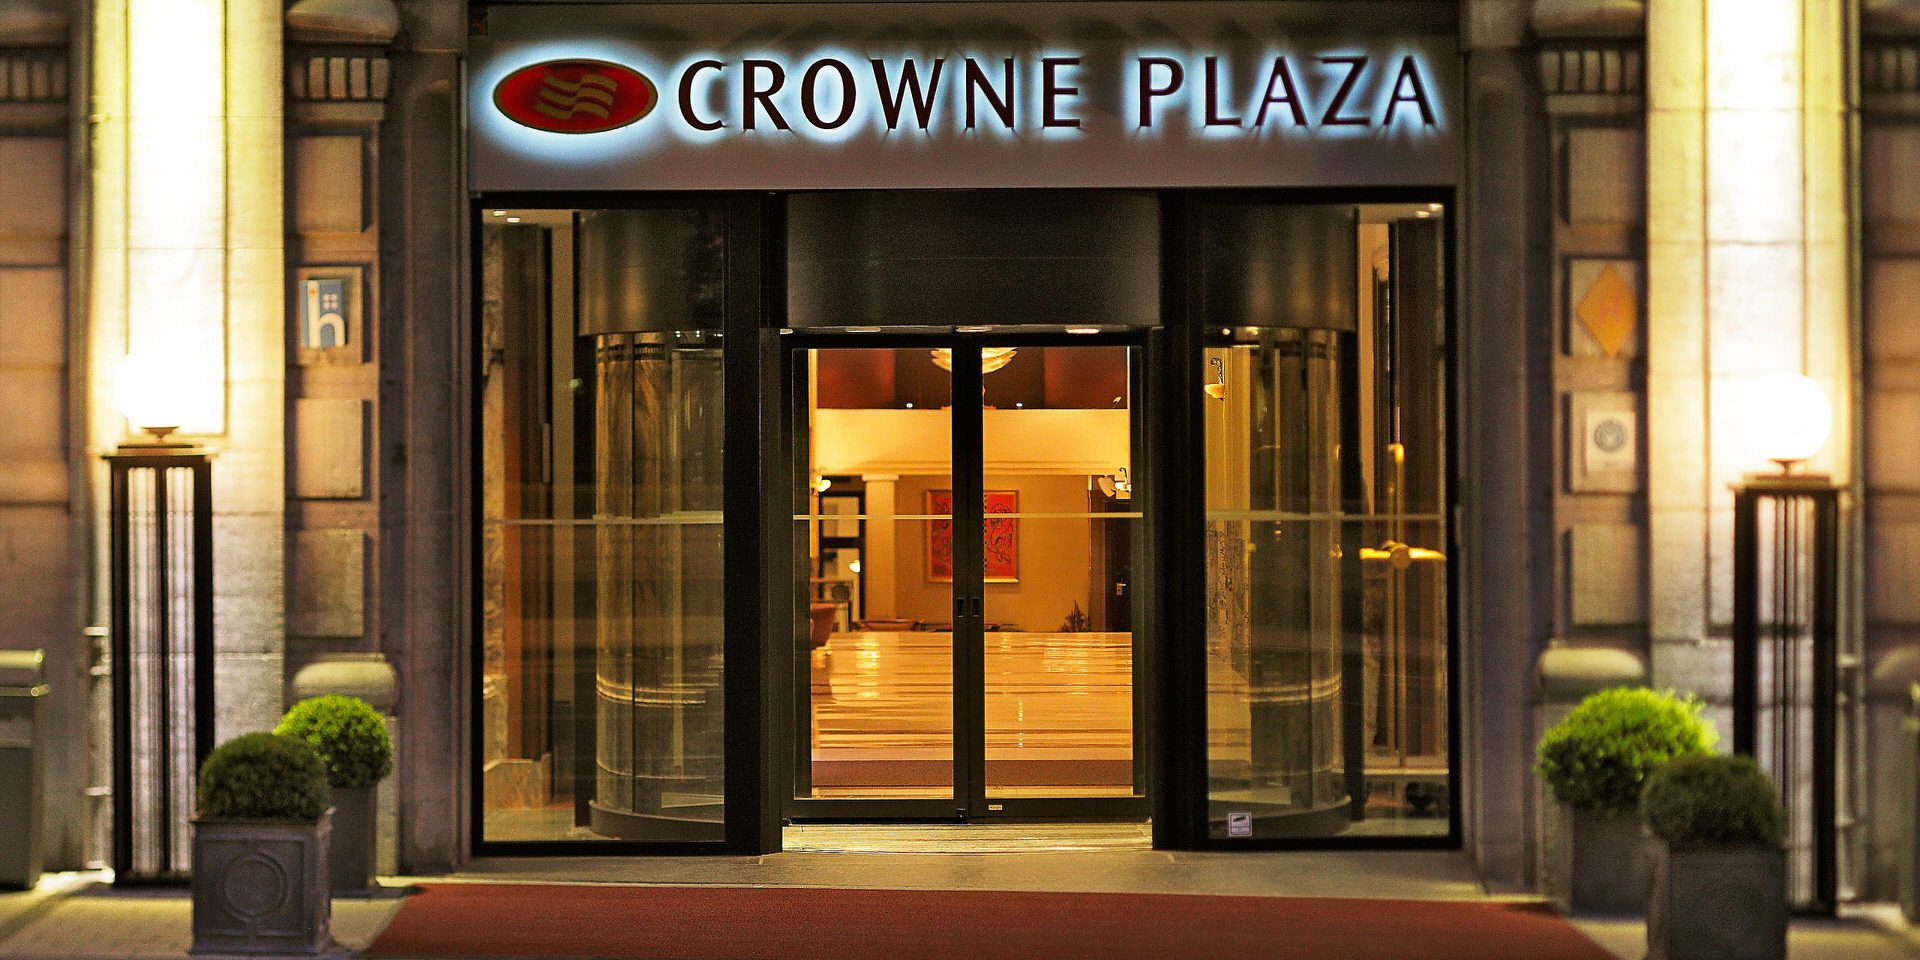 Entrance of the hotel Crowne Plaza Le Palace in Brussels